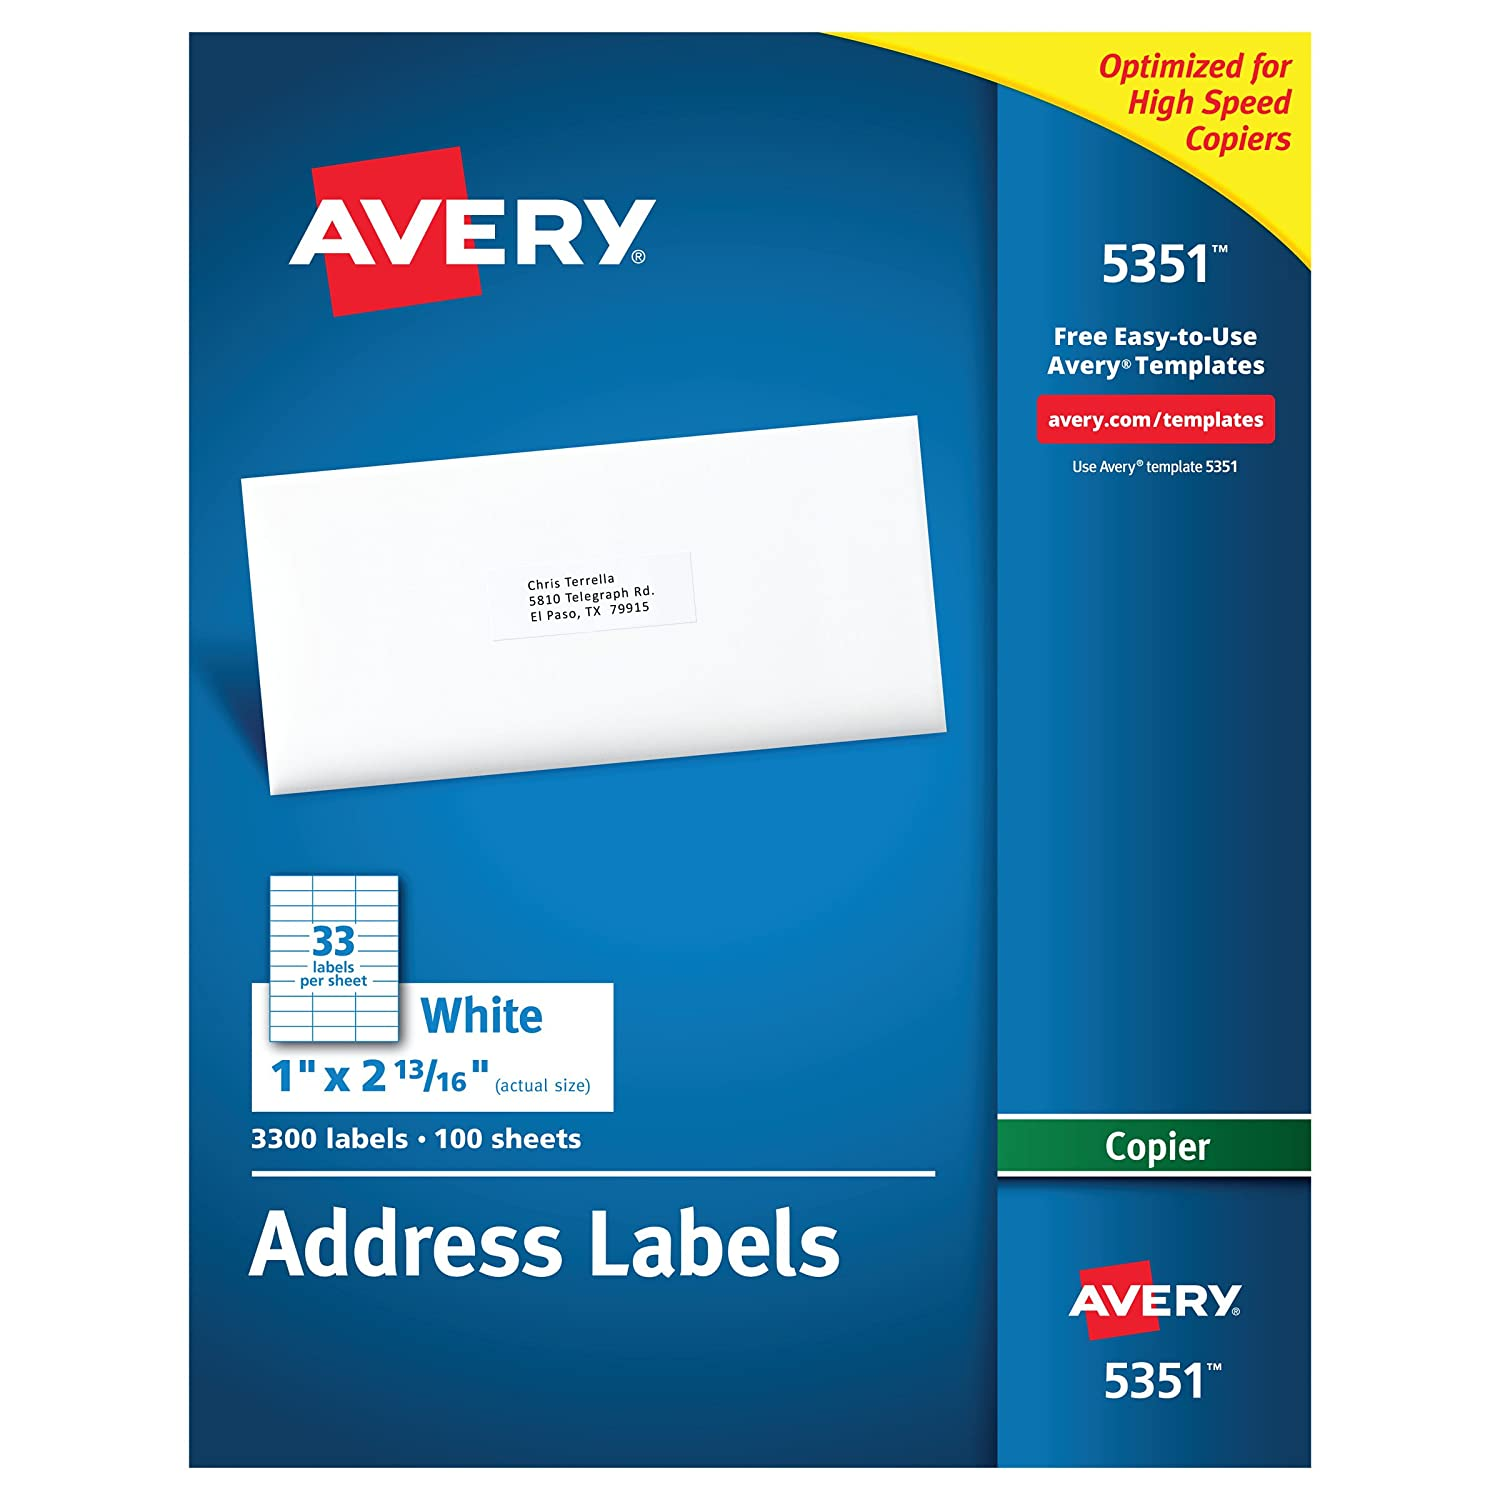 Amazon avery address labels for copiers 1 x 2 1316 box of amazon avery address labels for copiers 1 x 2 1316 box of 3 300 5351 office products saigontimesfo